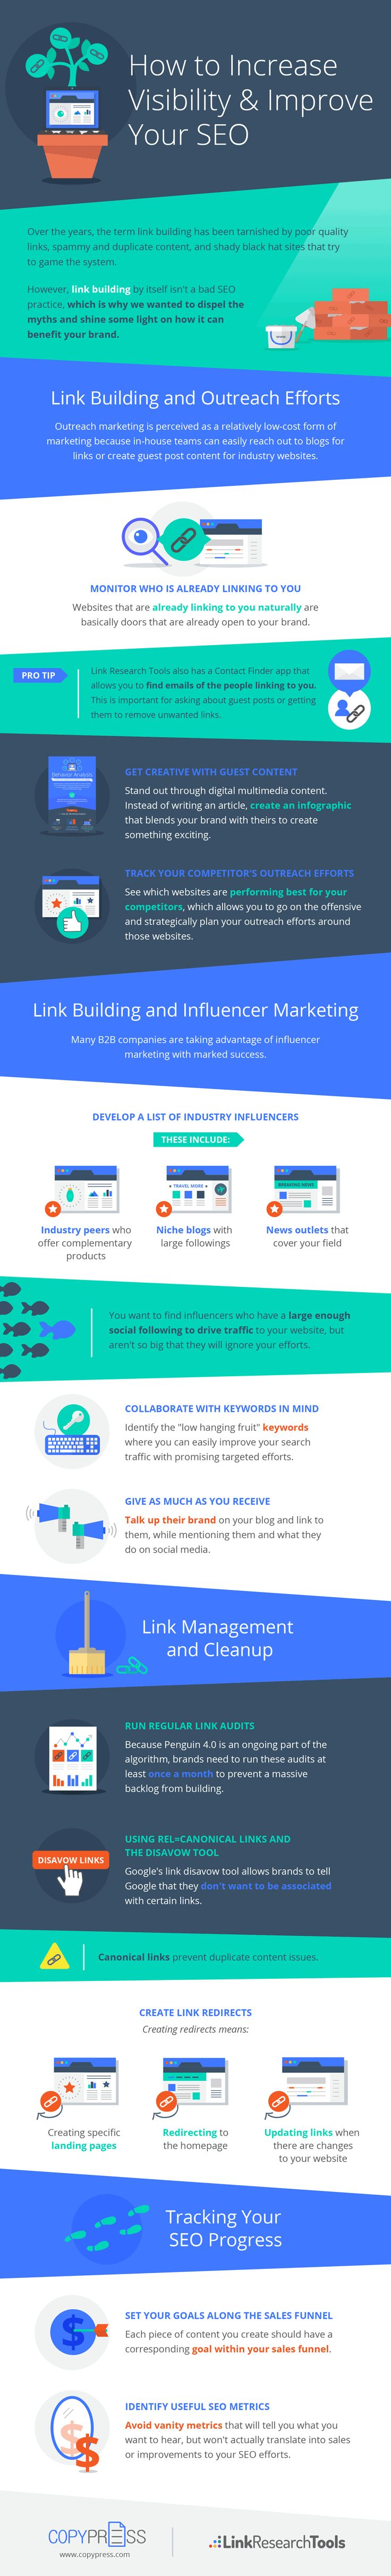 Samll business marketing tips: Want to improve SEO? One valuable technique that's getting a lot of buzz: Influencer marketing. Learn how you can harness its power on this infographic.